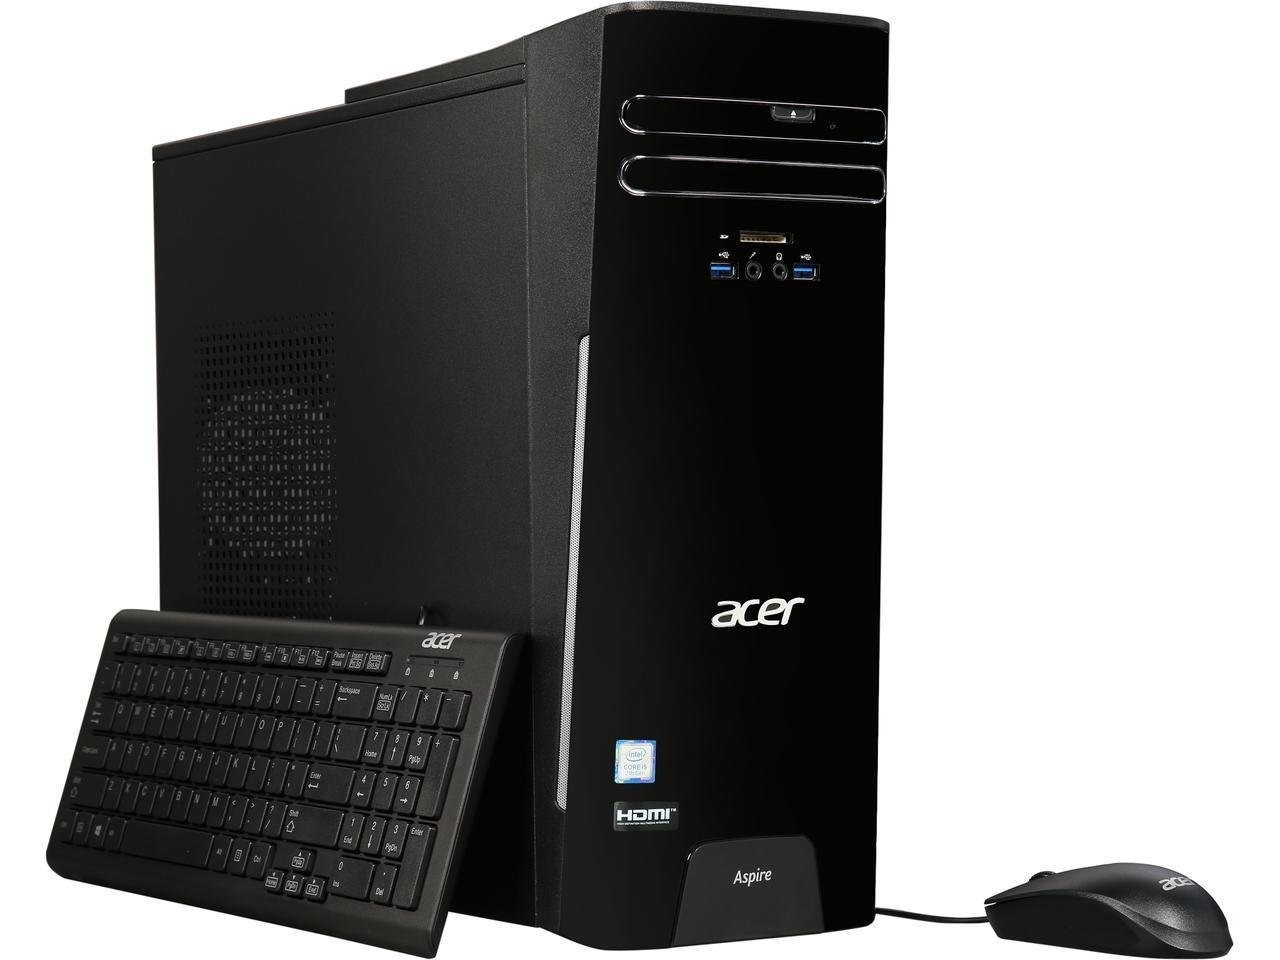 2018 Flagship Acer Aspire TC-780 High Performance Desktop, Intel Quad-Core i5-7400 up to 3.5GHz, 8GB DDR4, 256GB SSD, DVD±RW, Bluetooth, 802.11ac, HDMI, USB 3.0, Win 10 (Mouse&Keyboard Included)